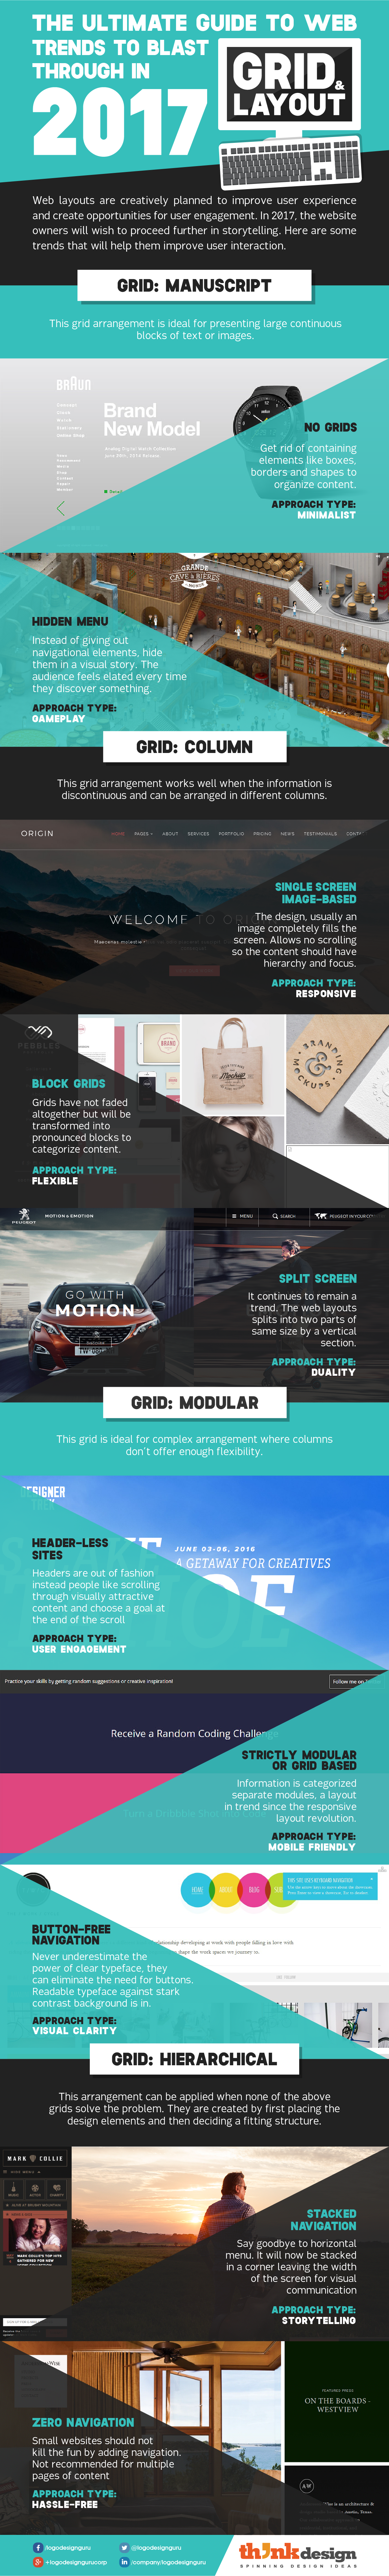 The Ultimate Guide To Web Grid And Layout Trends To Blast Through In 2017